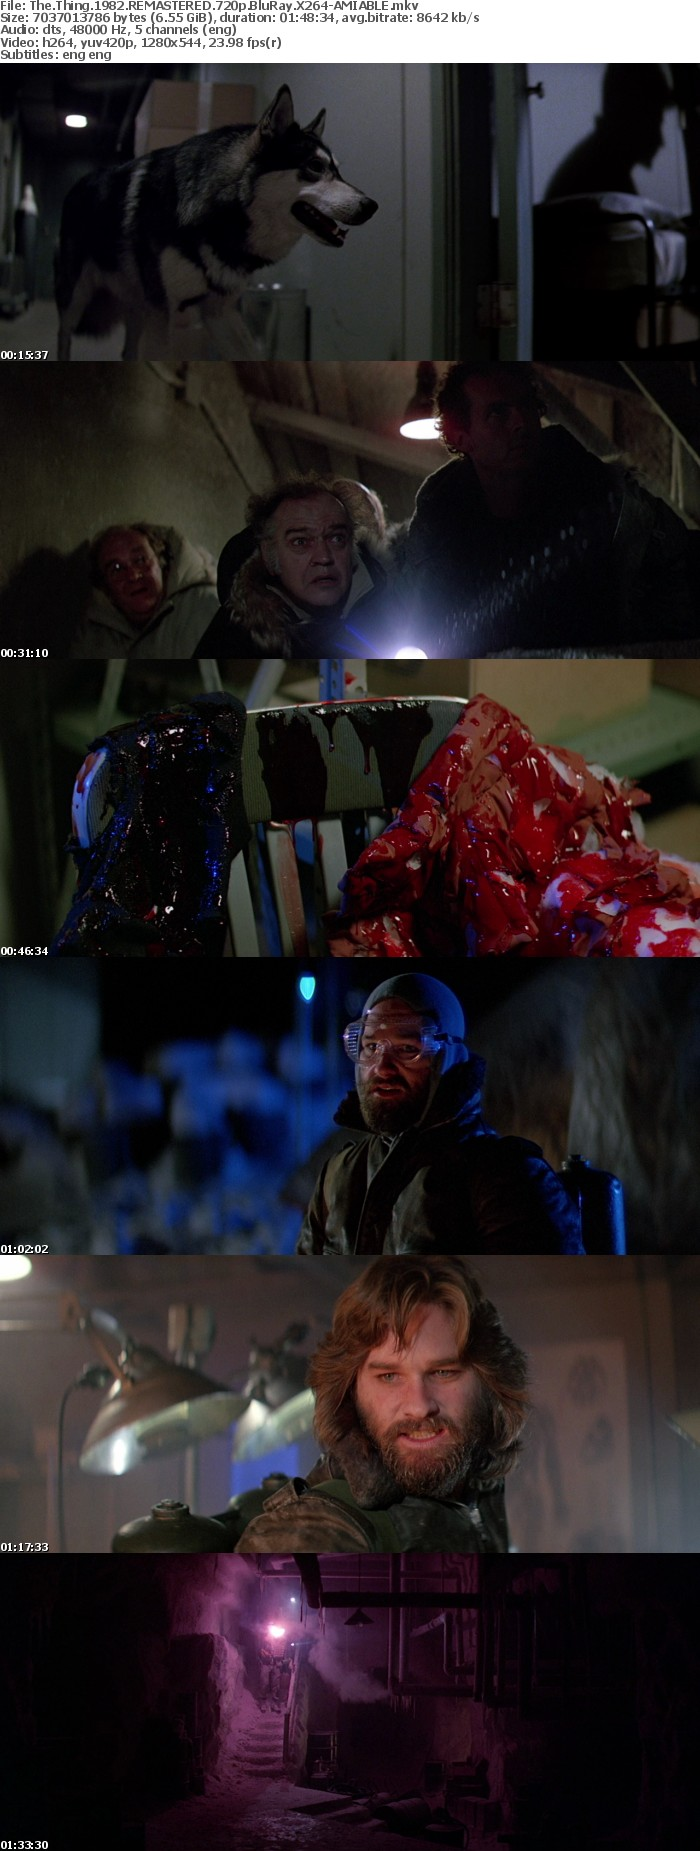 The Thing 1982 REMASTERED 720p BluRay X264-AMIABLE